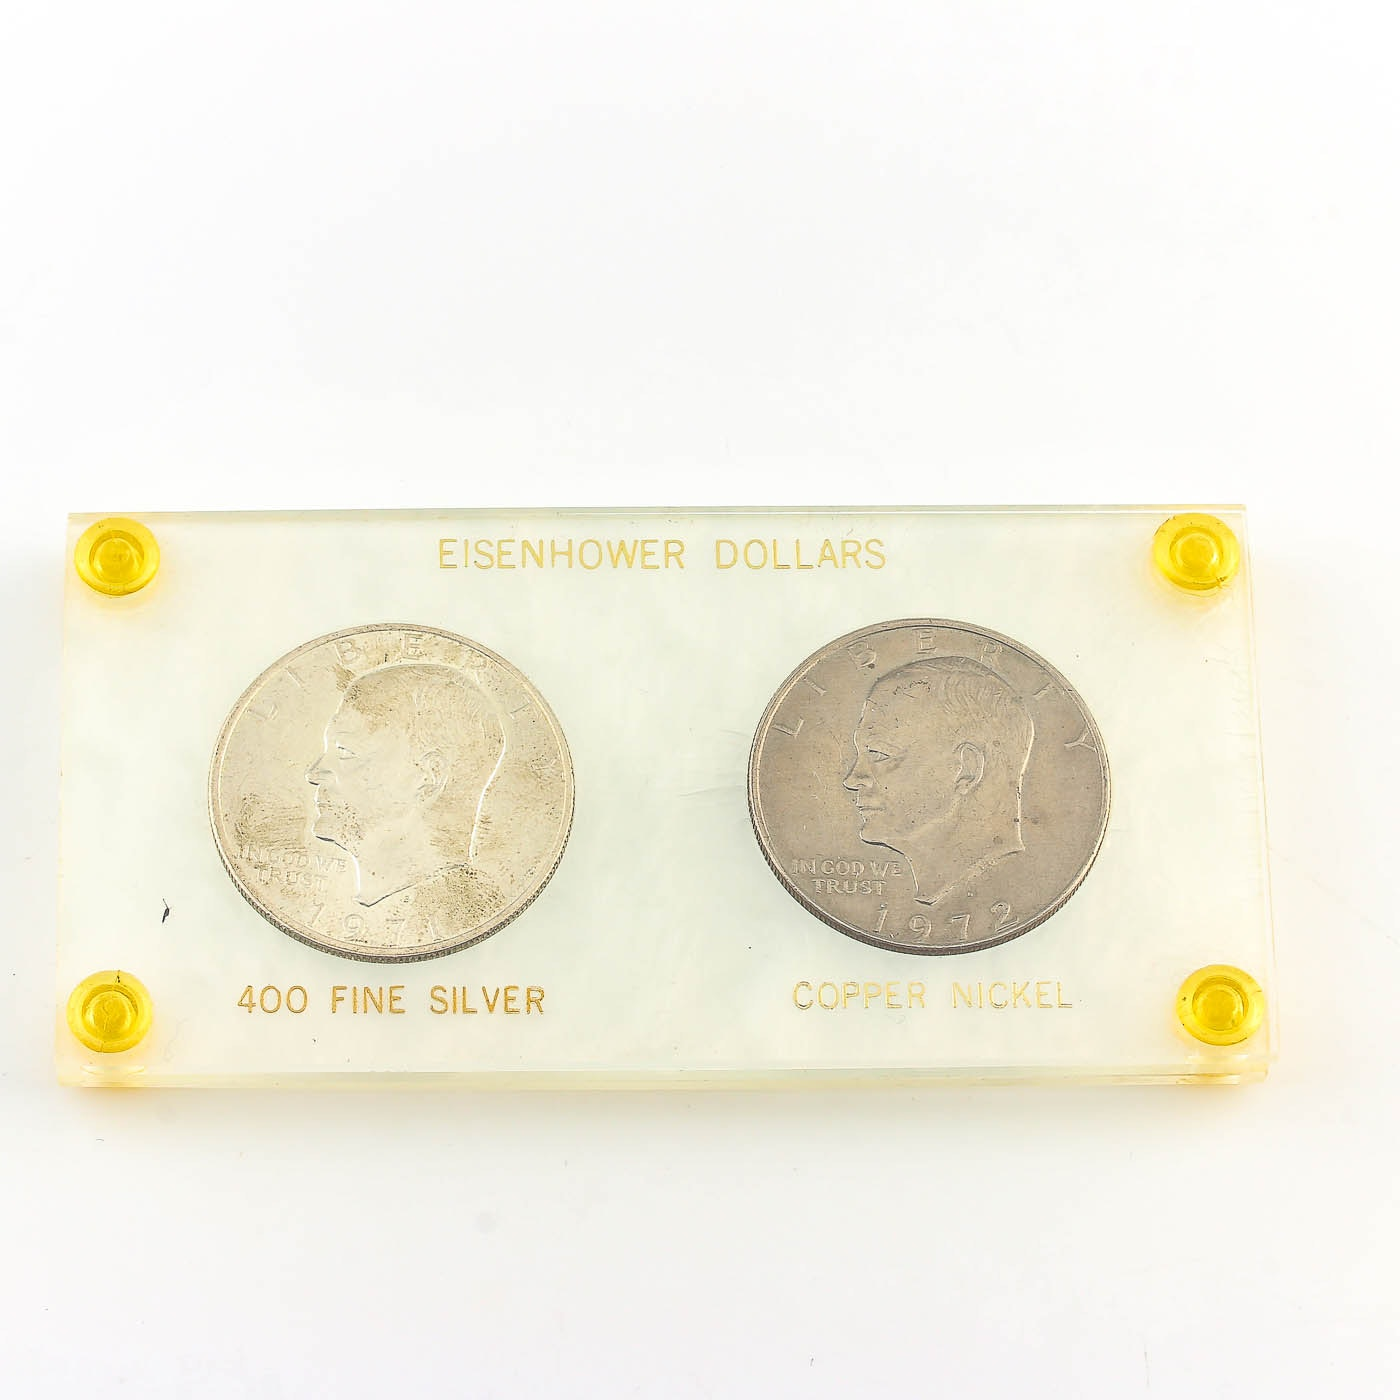 Group of Two Eisenhower Dollars